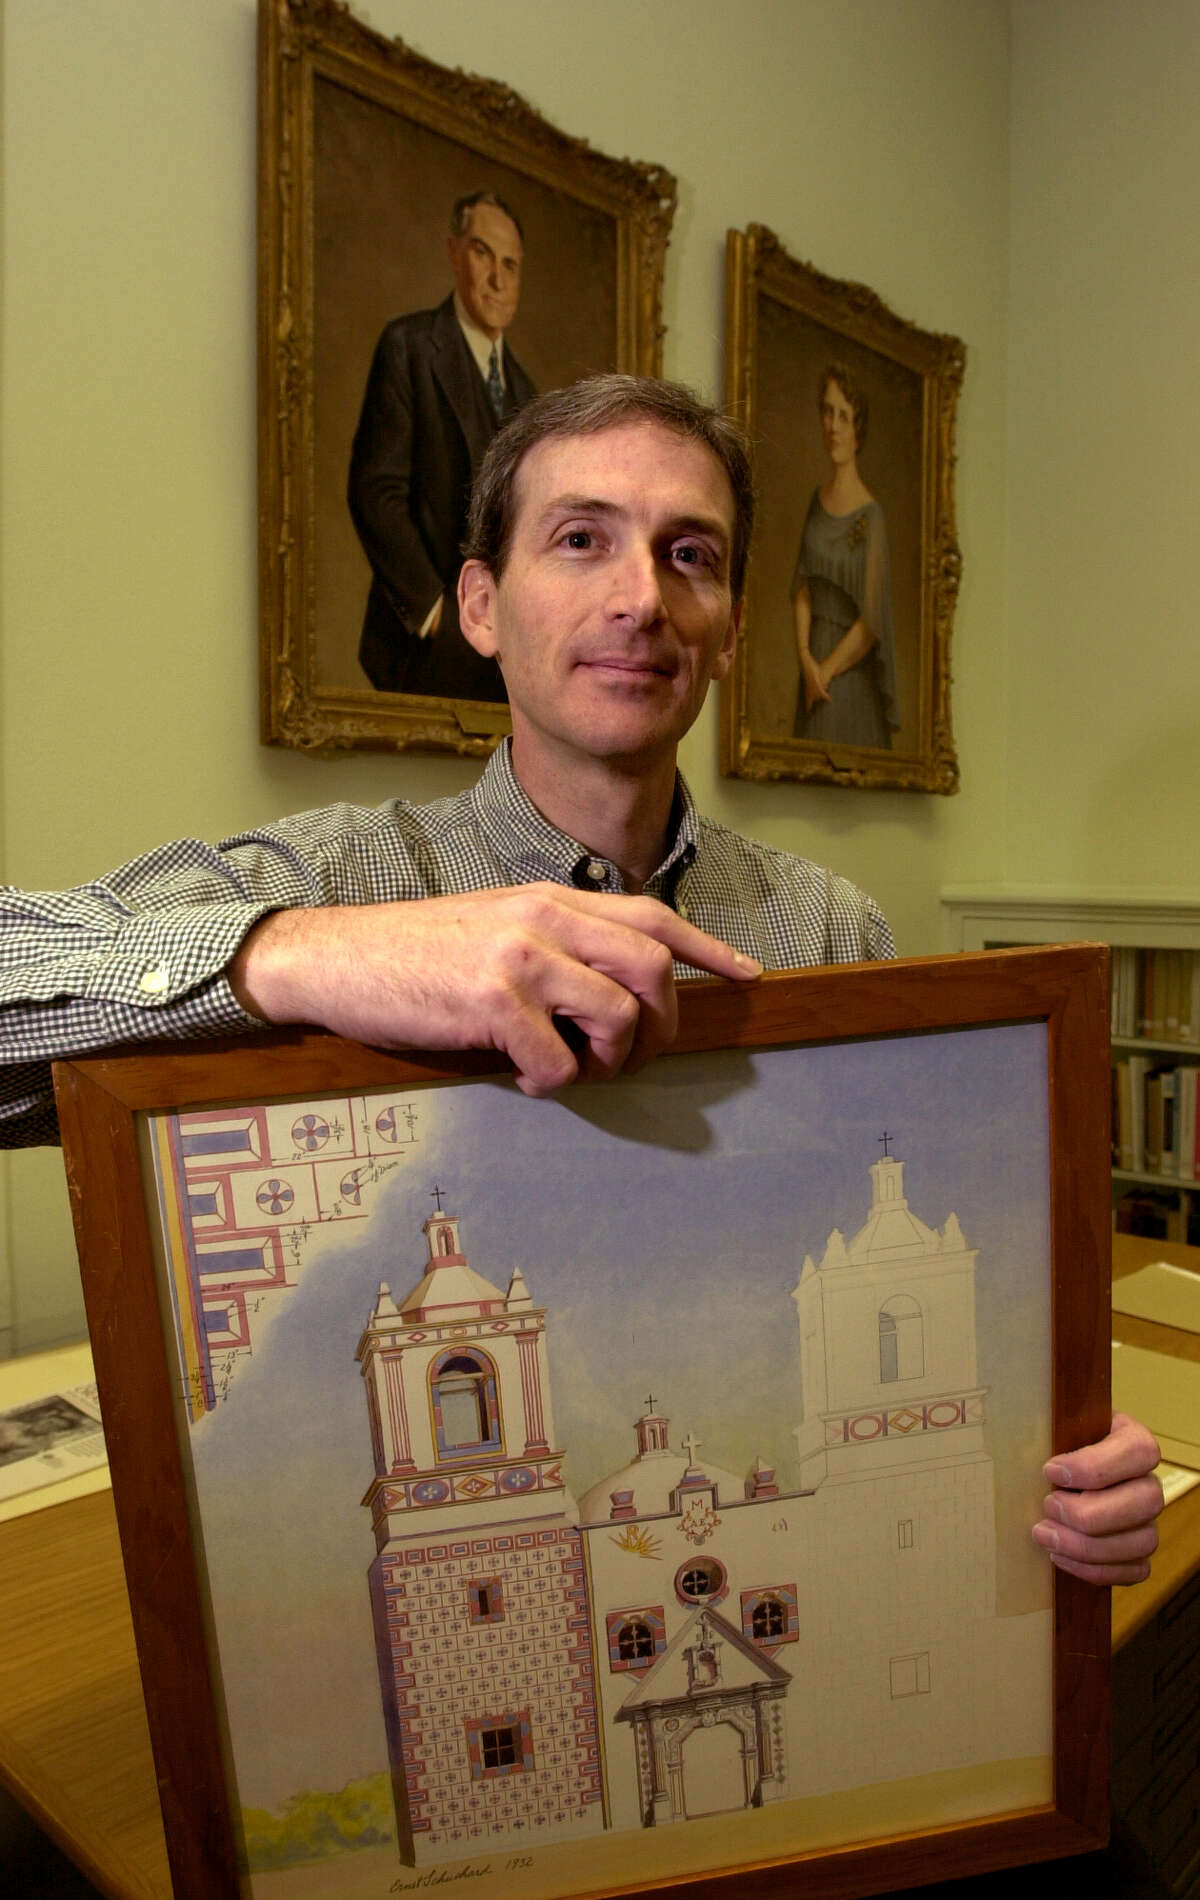 Warren Stricker, archivist at the DRT Library, shows a circa-1932 rendering by Ernst Schuchard depicting frescoes on the facade of Mission Concepcion, in preparation for the library's 50th anniversary in 2000. In the background are paintings of John and Sally Beretta, whose financial contributions started the library, now called the Alamo Research Center.